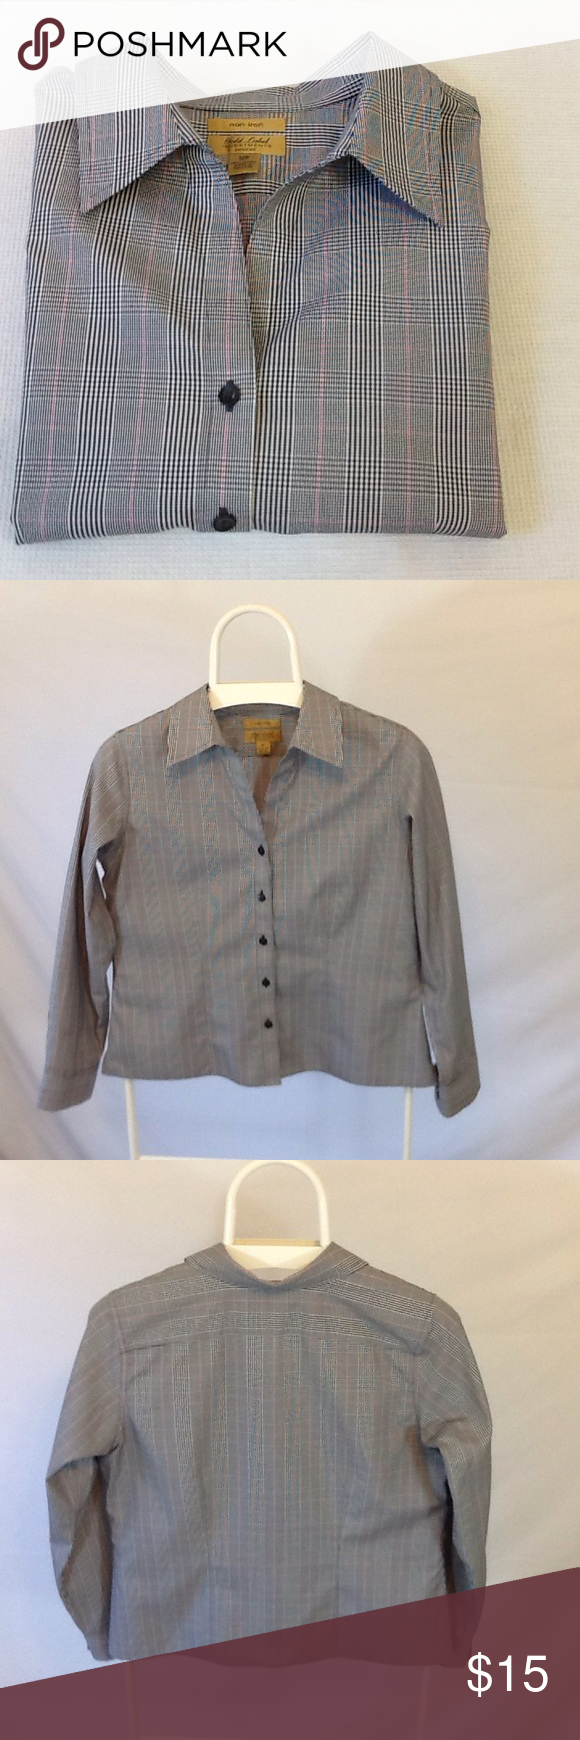 604fa9d2cf8 Roundtree and Yorke Women s Front Top Blouse Roundtree and Yorke s Gold  Label Investment non-iron long sleeve front top blouse in excellent  pre-owned ...